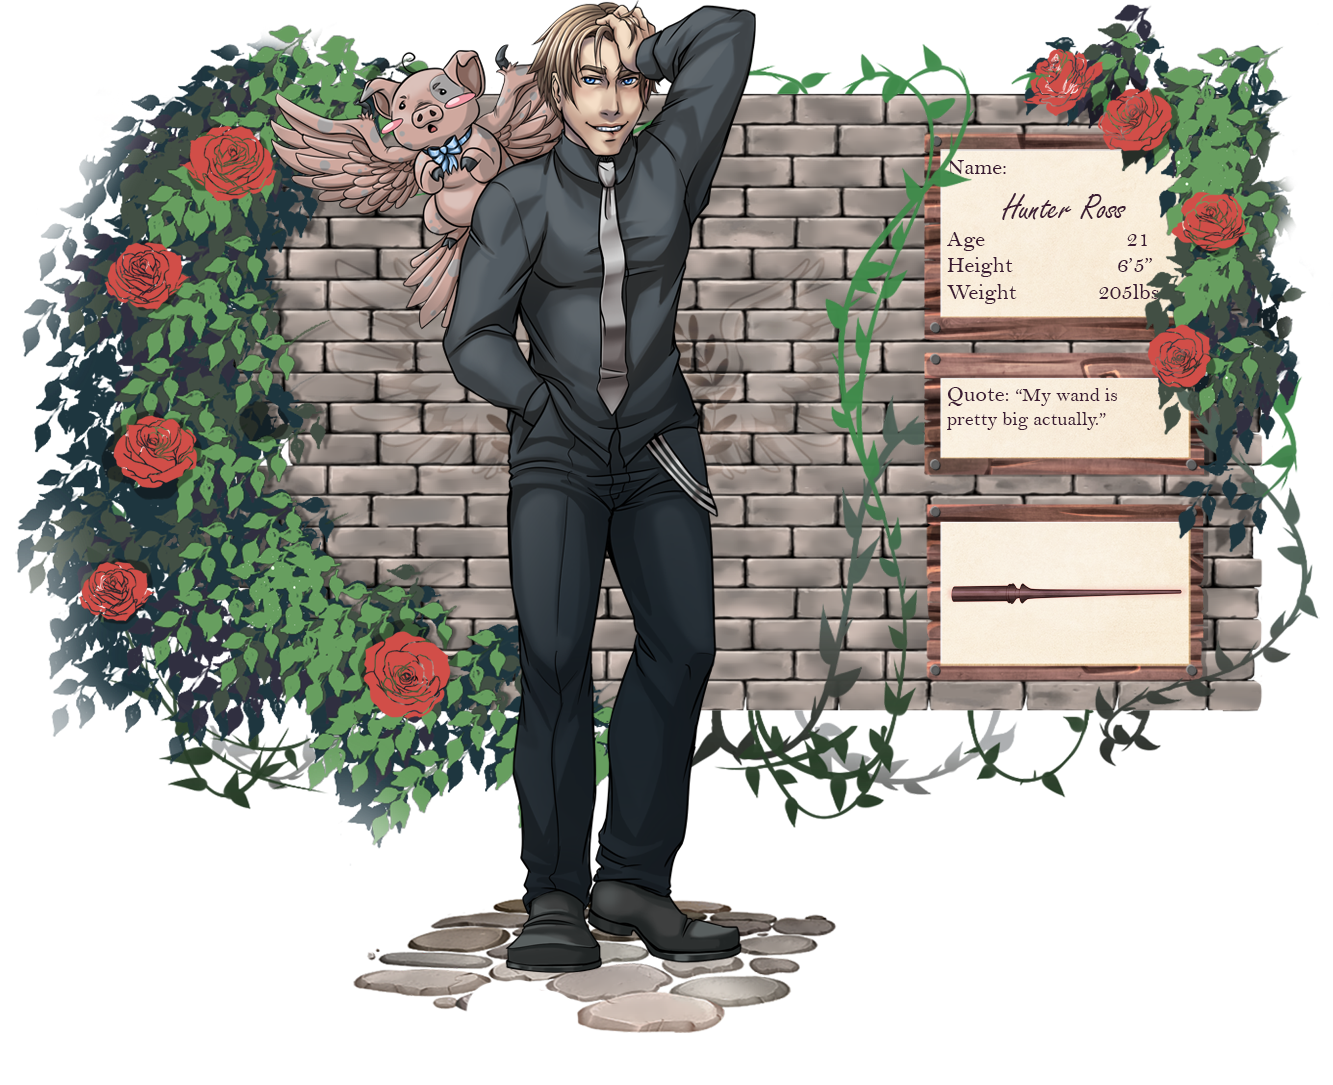 [TRA] Hunter Ross - Second Year